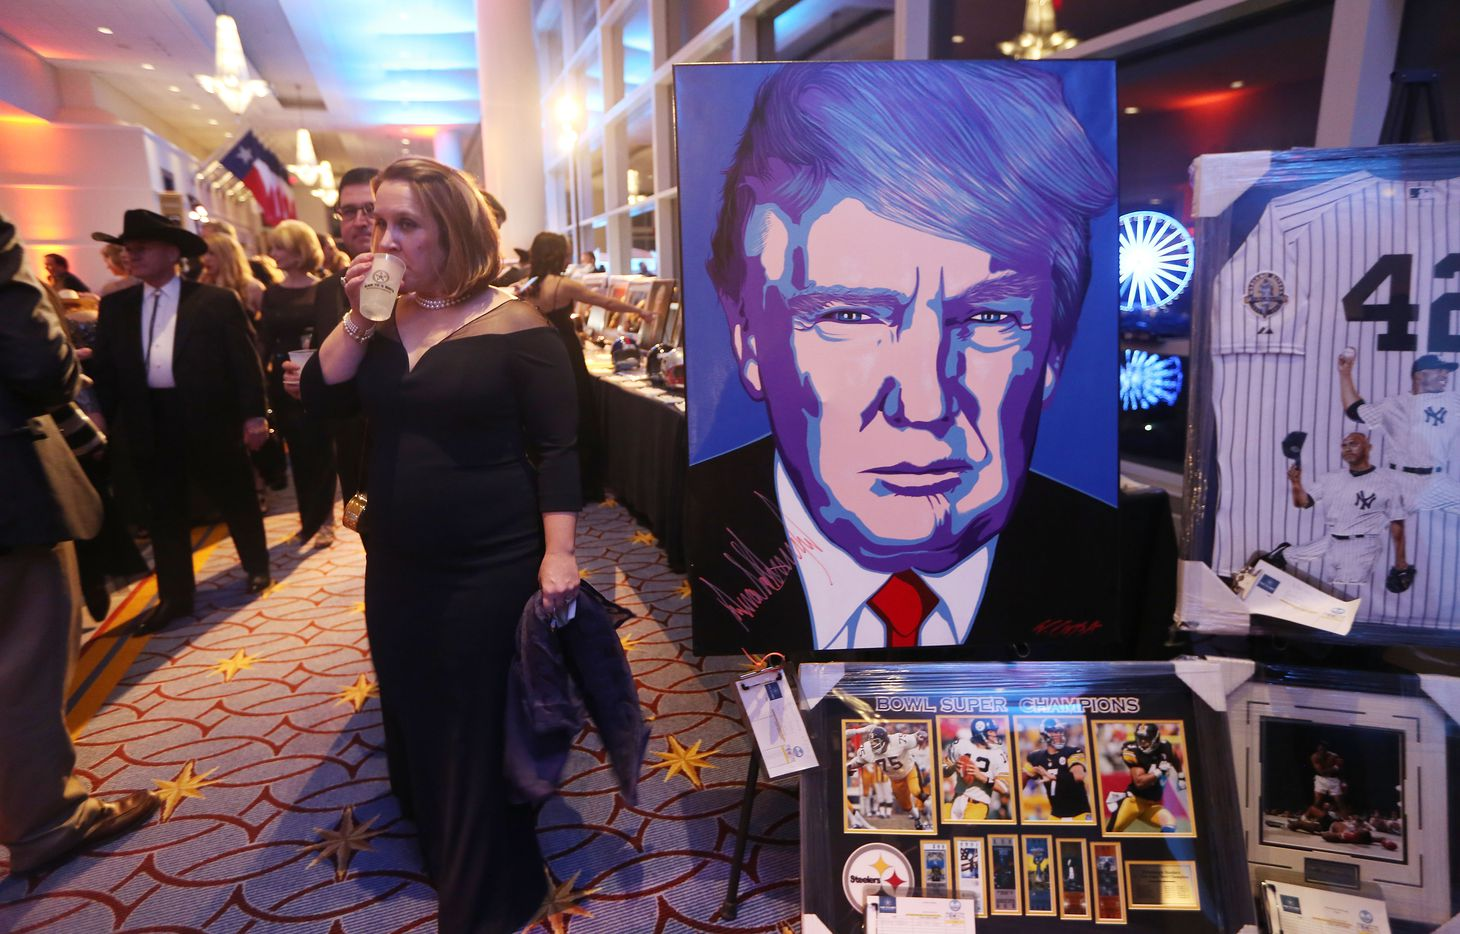 Revelers attend the Texas Black Tie and Boots inaugural ball on January 19, 2017 in National Harbor, Maryland. President-elect Donald Trump will be sworn in as the 45th president of the United States tomorrow.